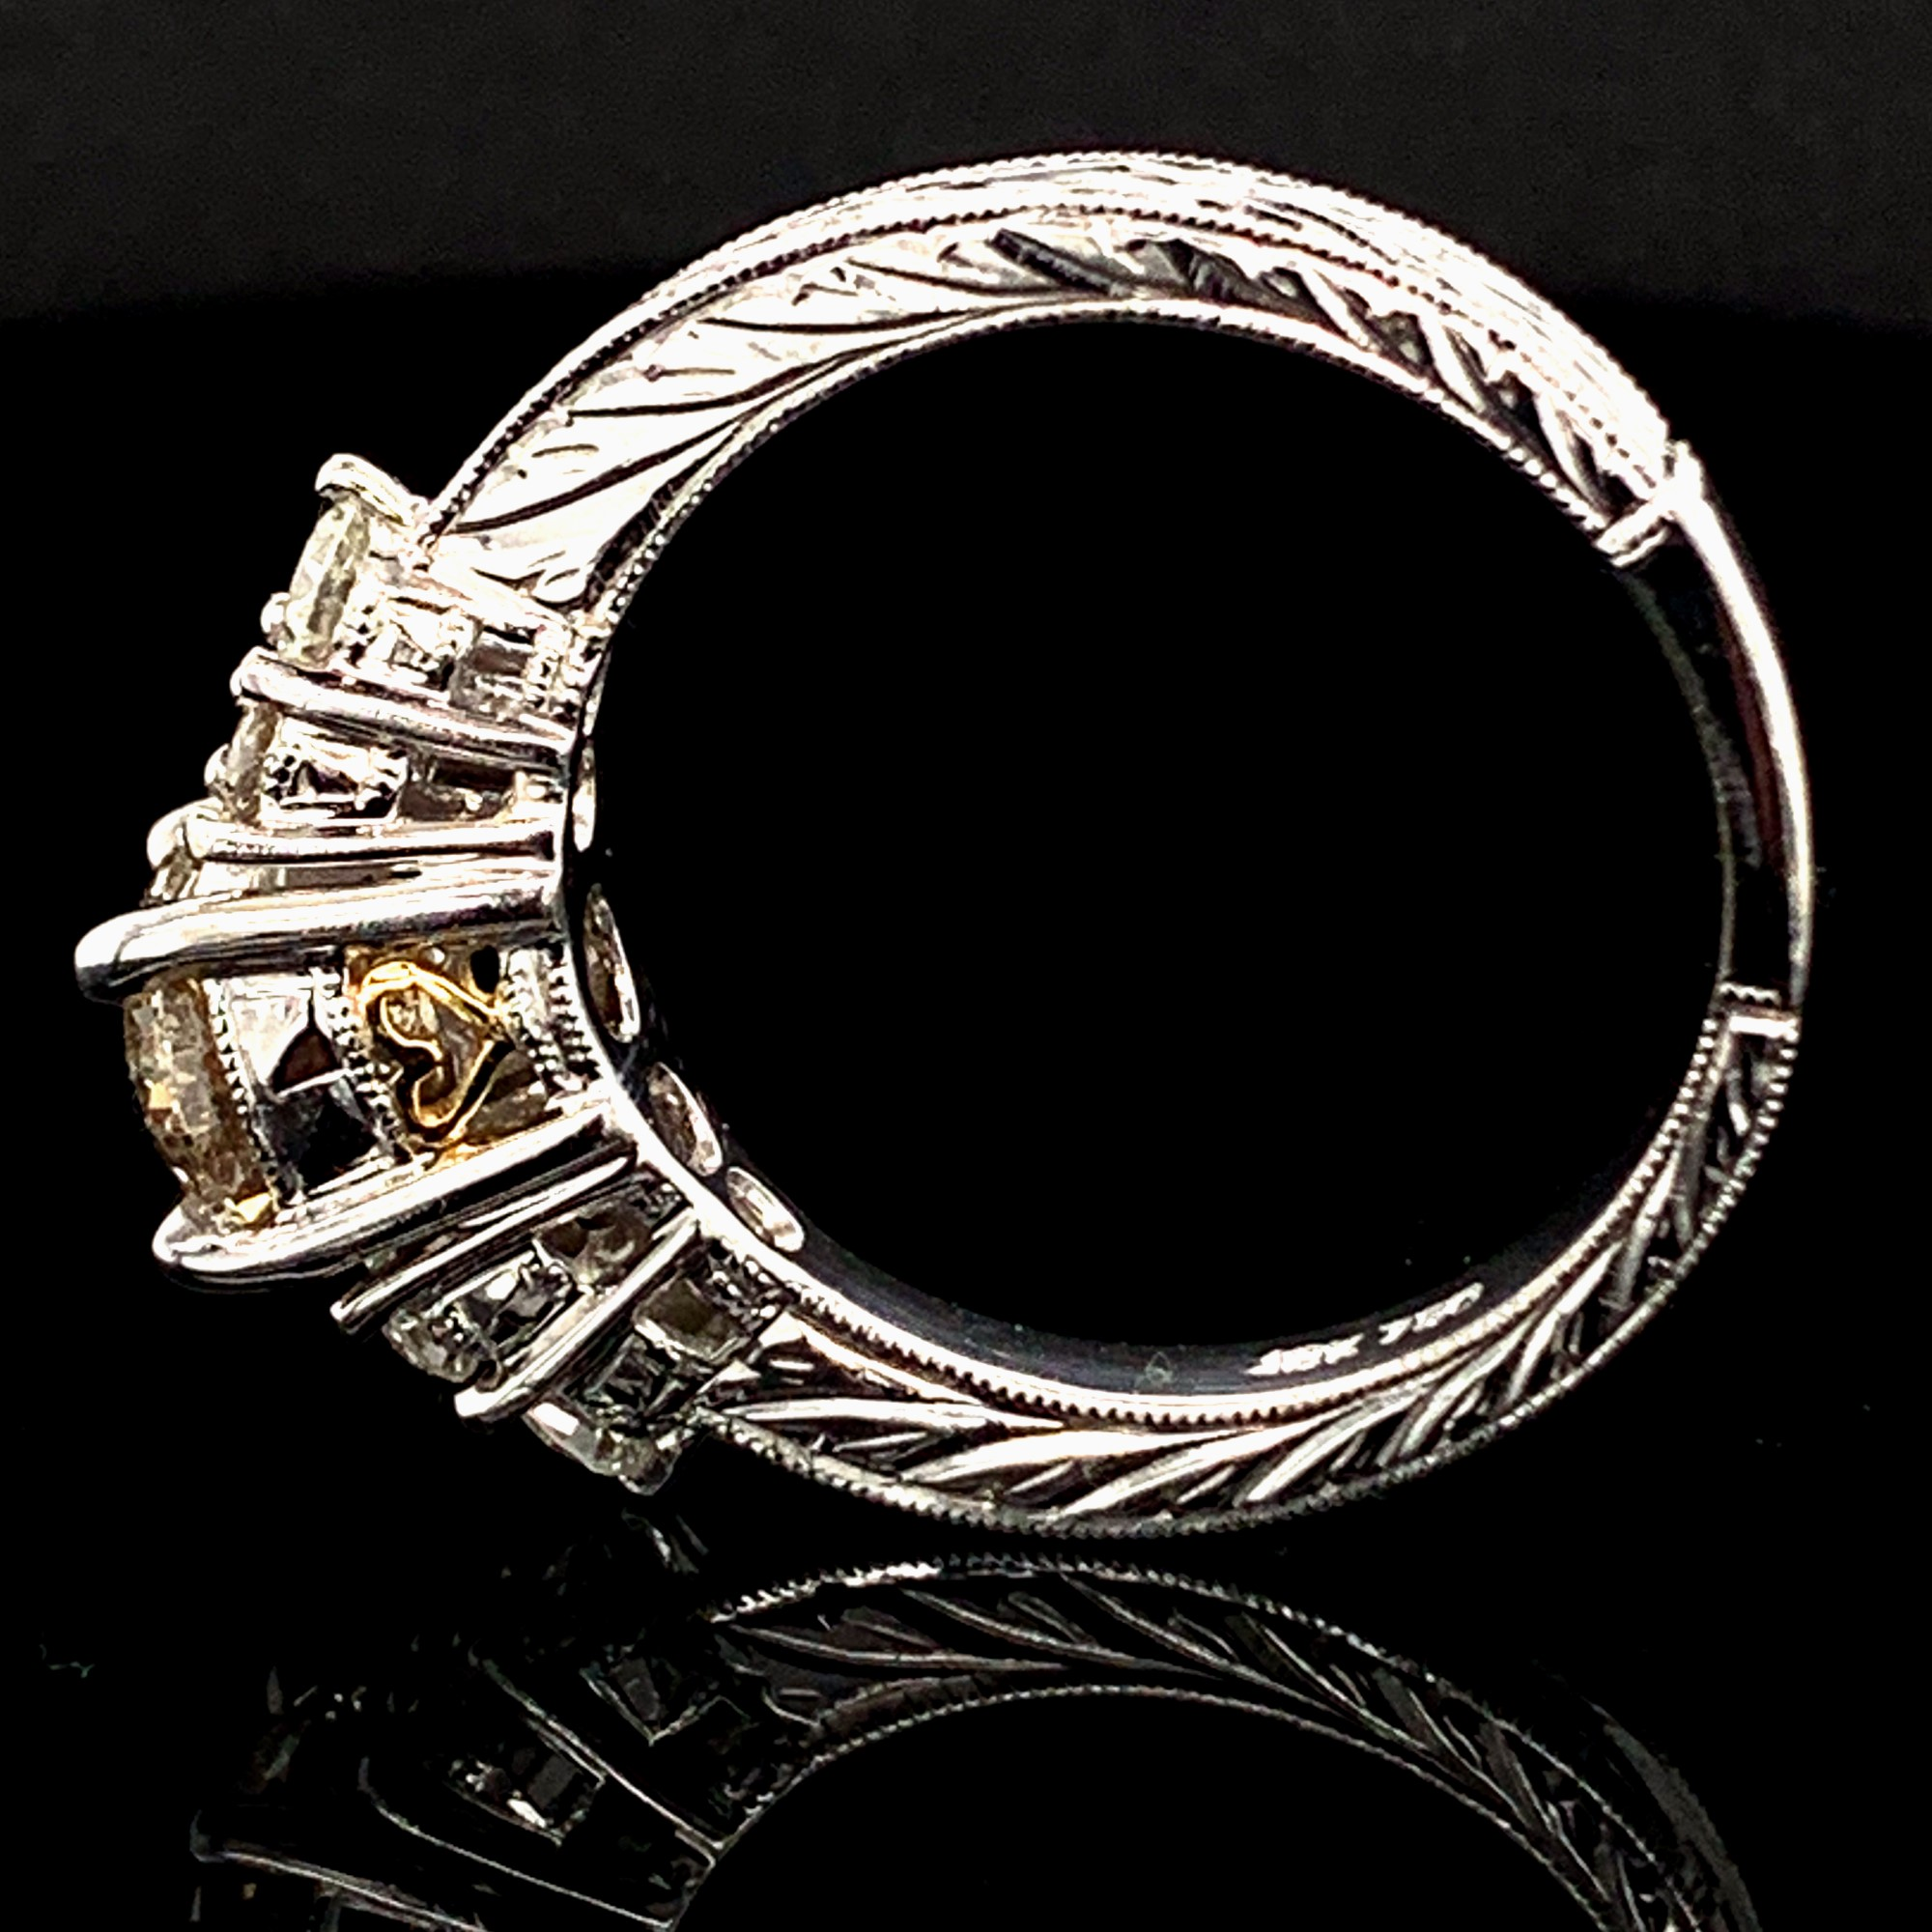 Diamond Engagement Rings - Ladies Carved 18K White/Yellow Gold And Diamond Engagement Ring - image #3